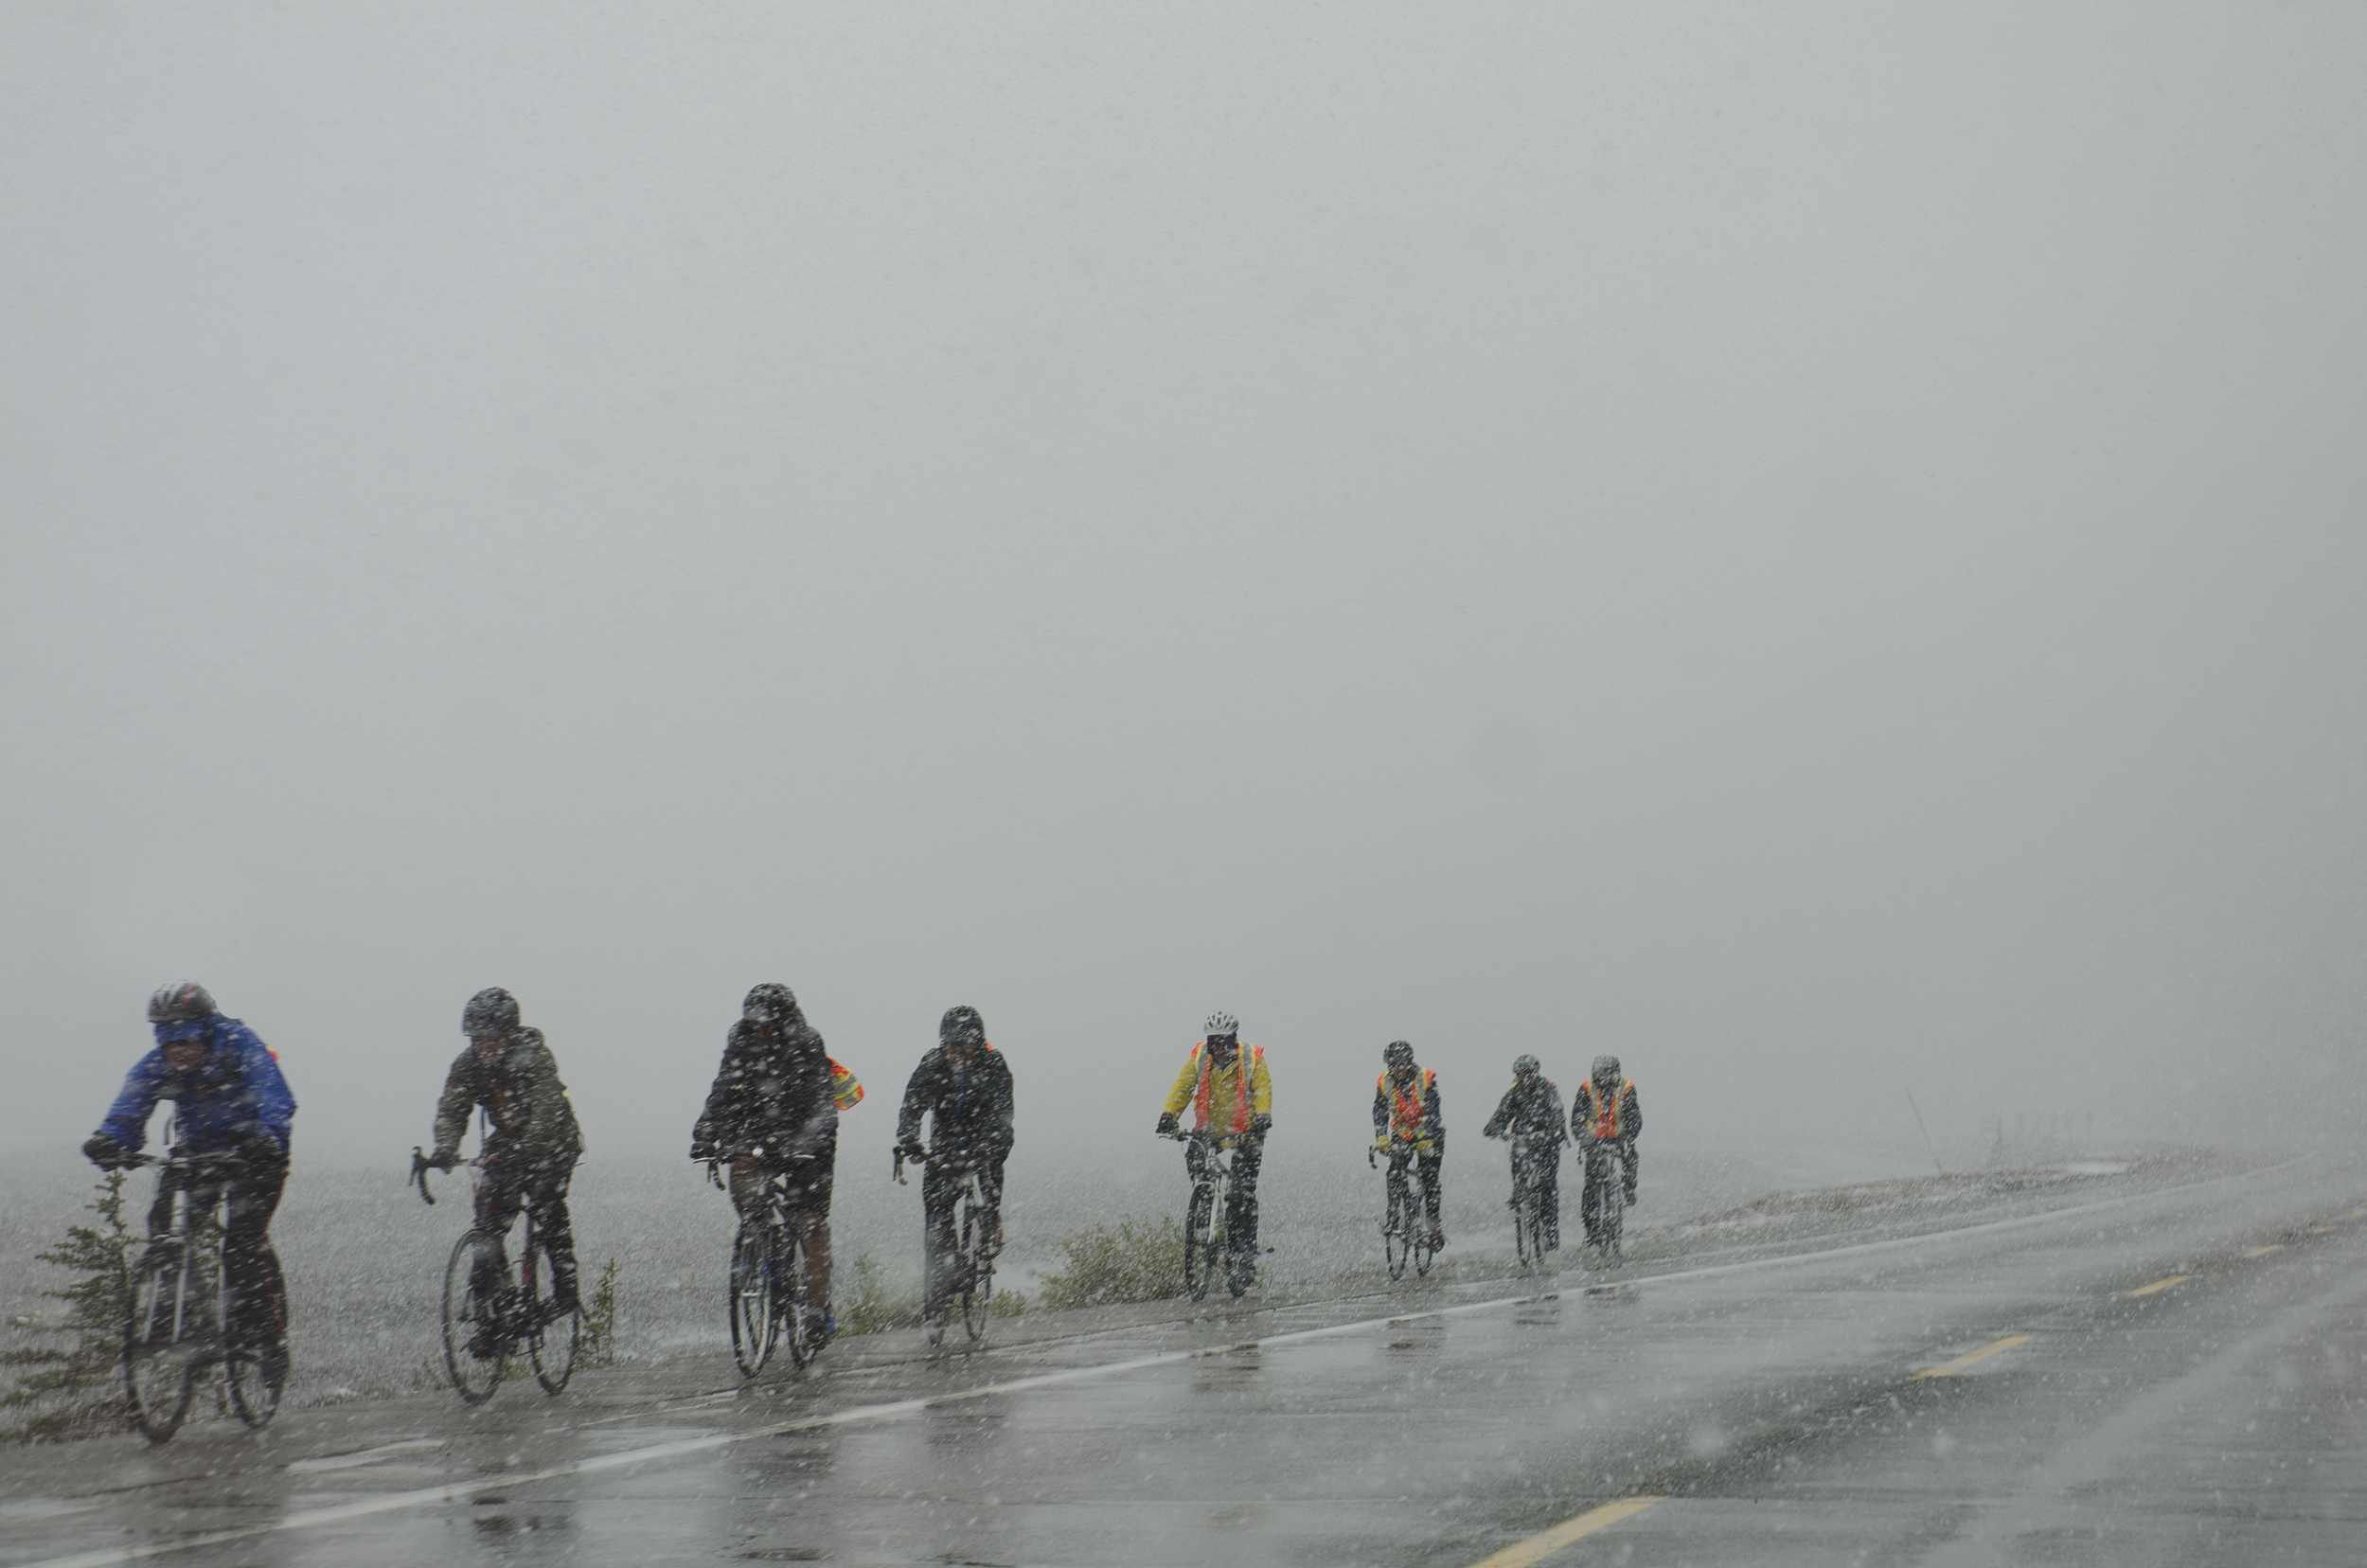 Can we all just agree that these are some pretty hardcore cyclists?!